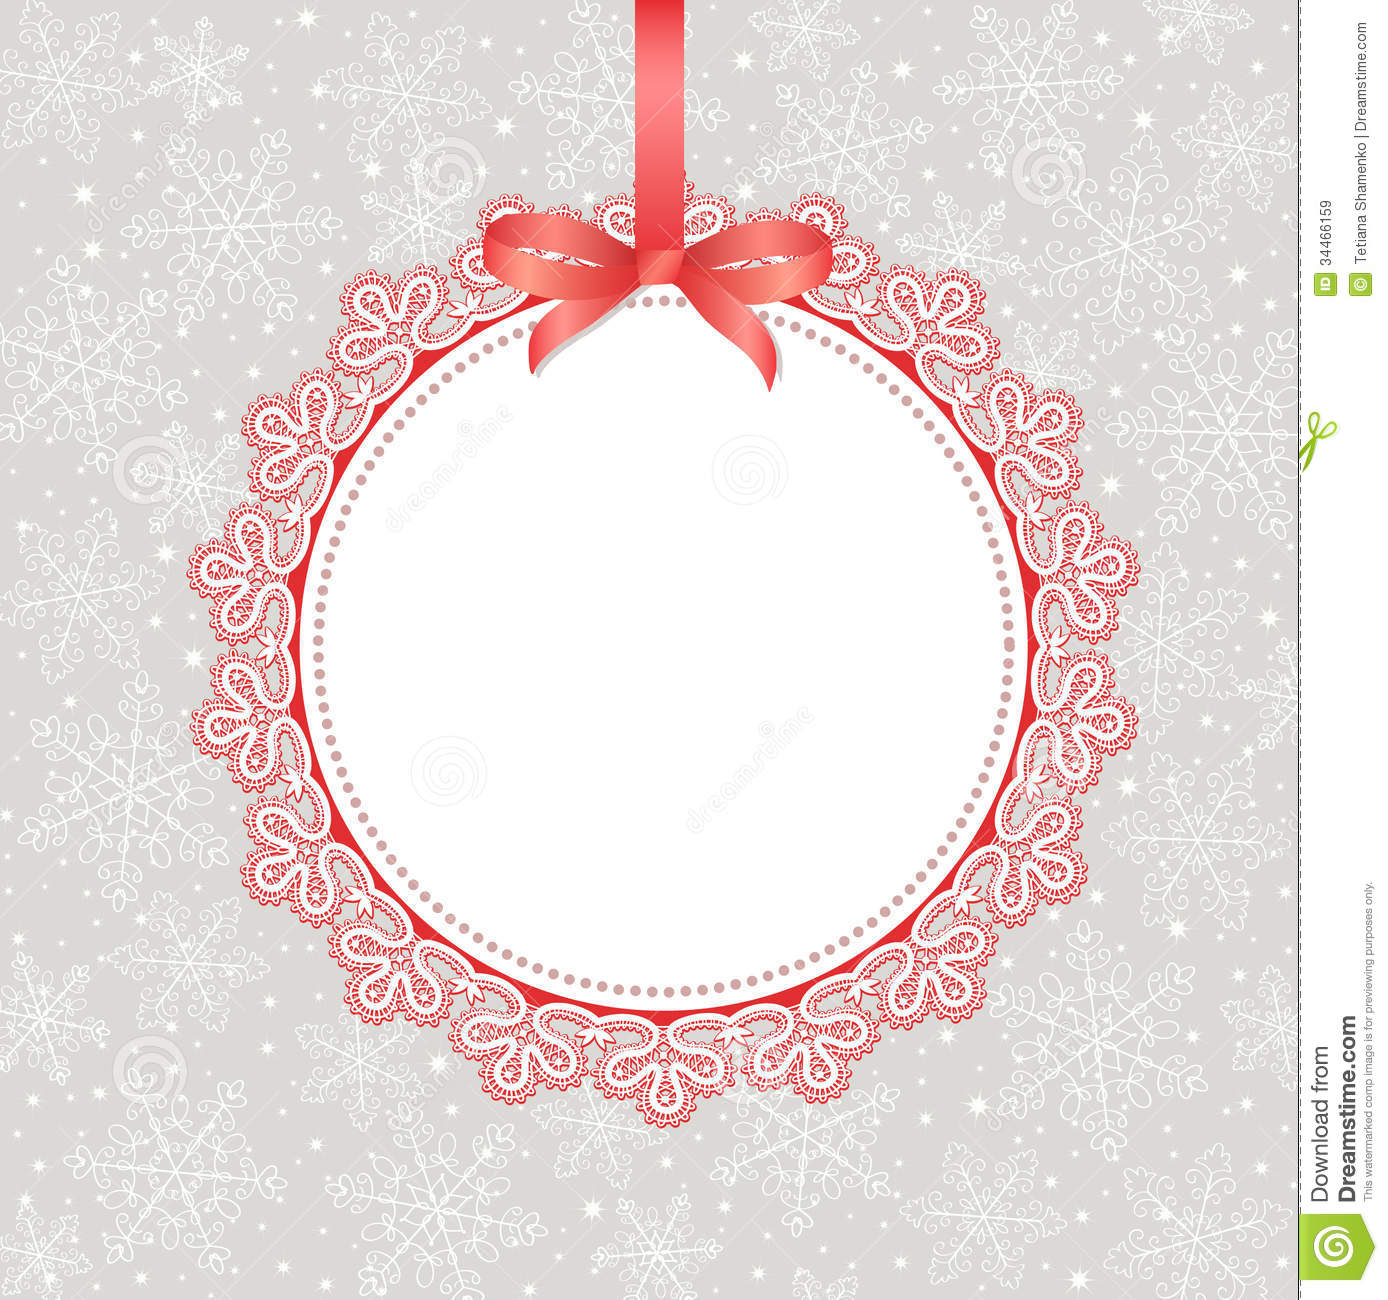 Template Frame Design For Greeting Card Royalty Free Stock ...